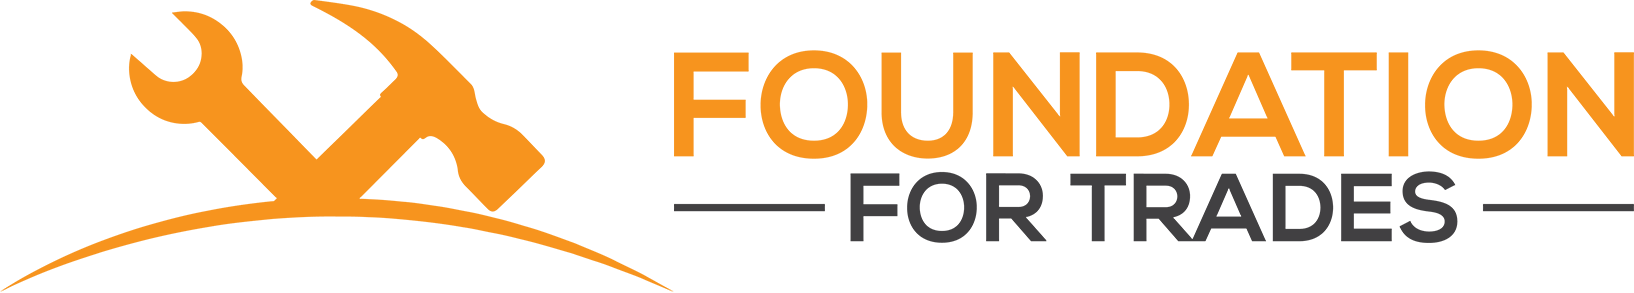 Foundation For Trades